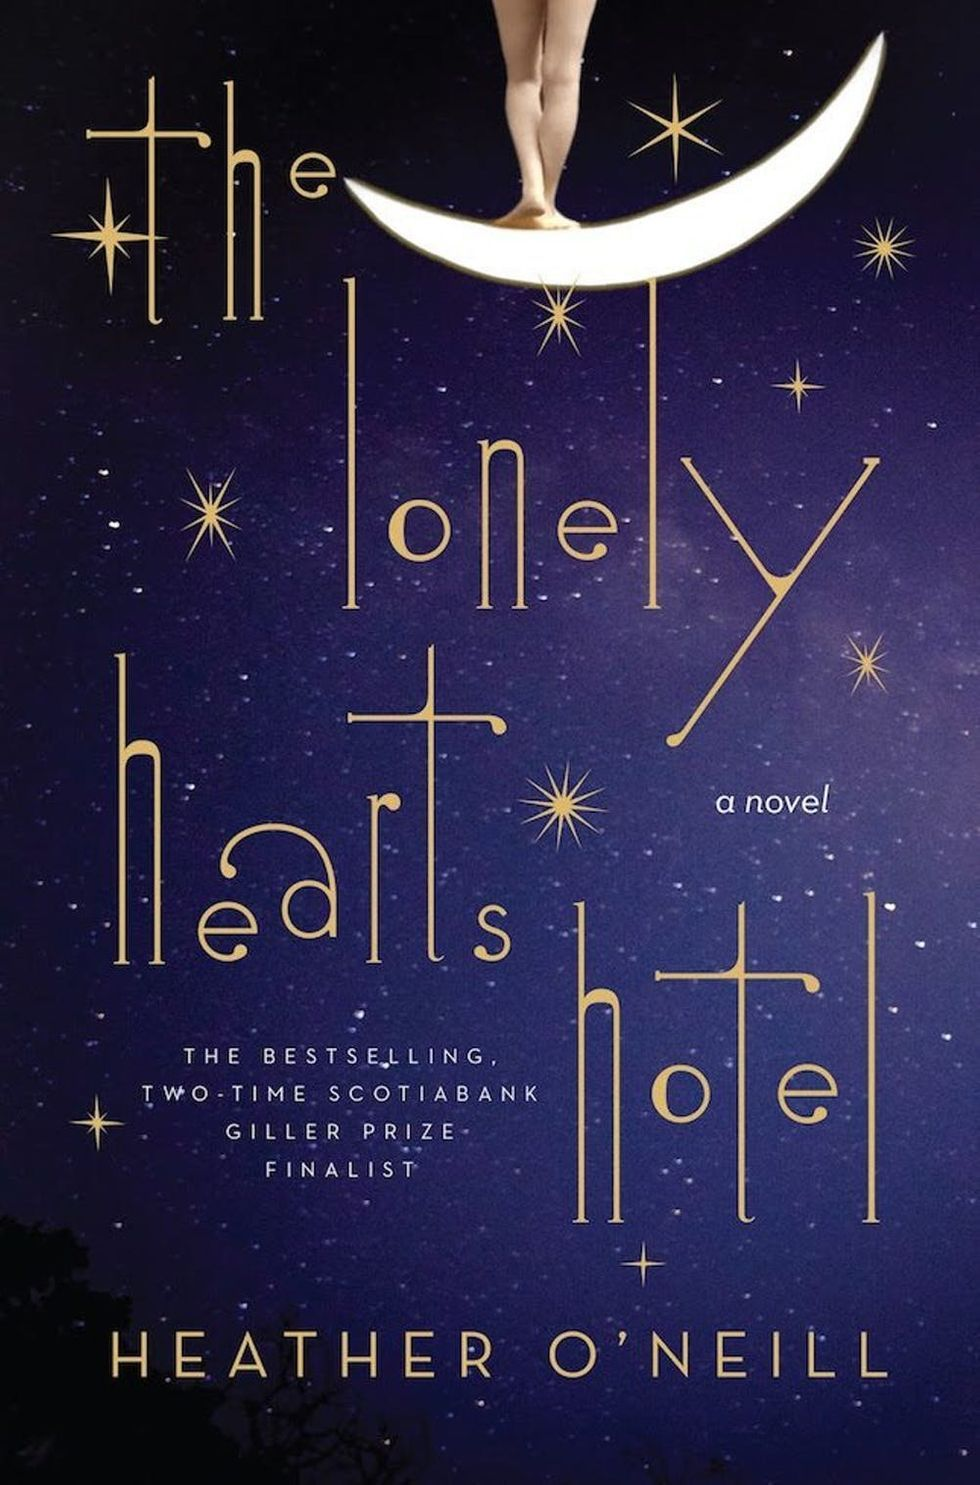 3 Magical Realism Books to Brighten Your Winter - Brit + Co